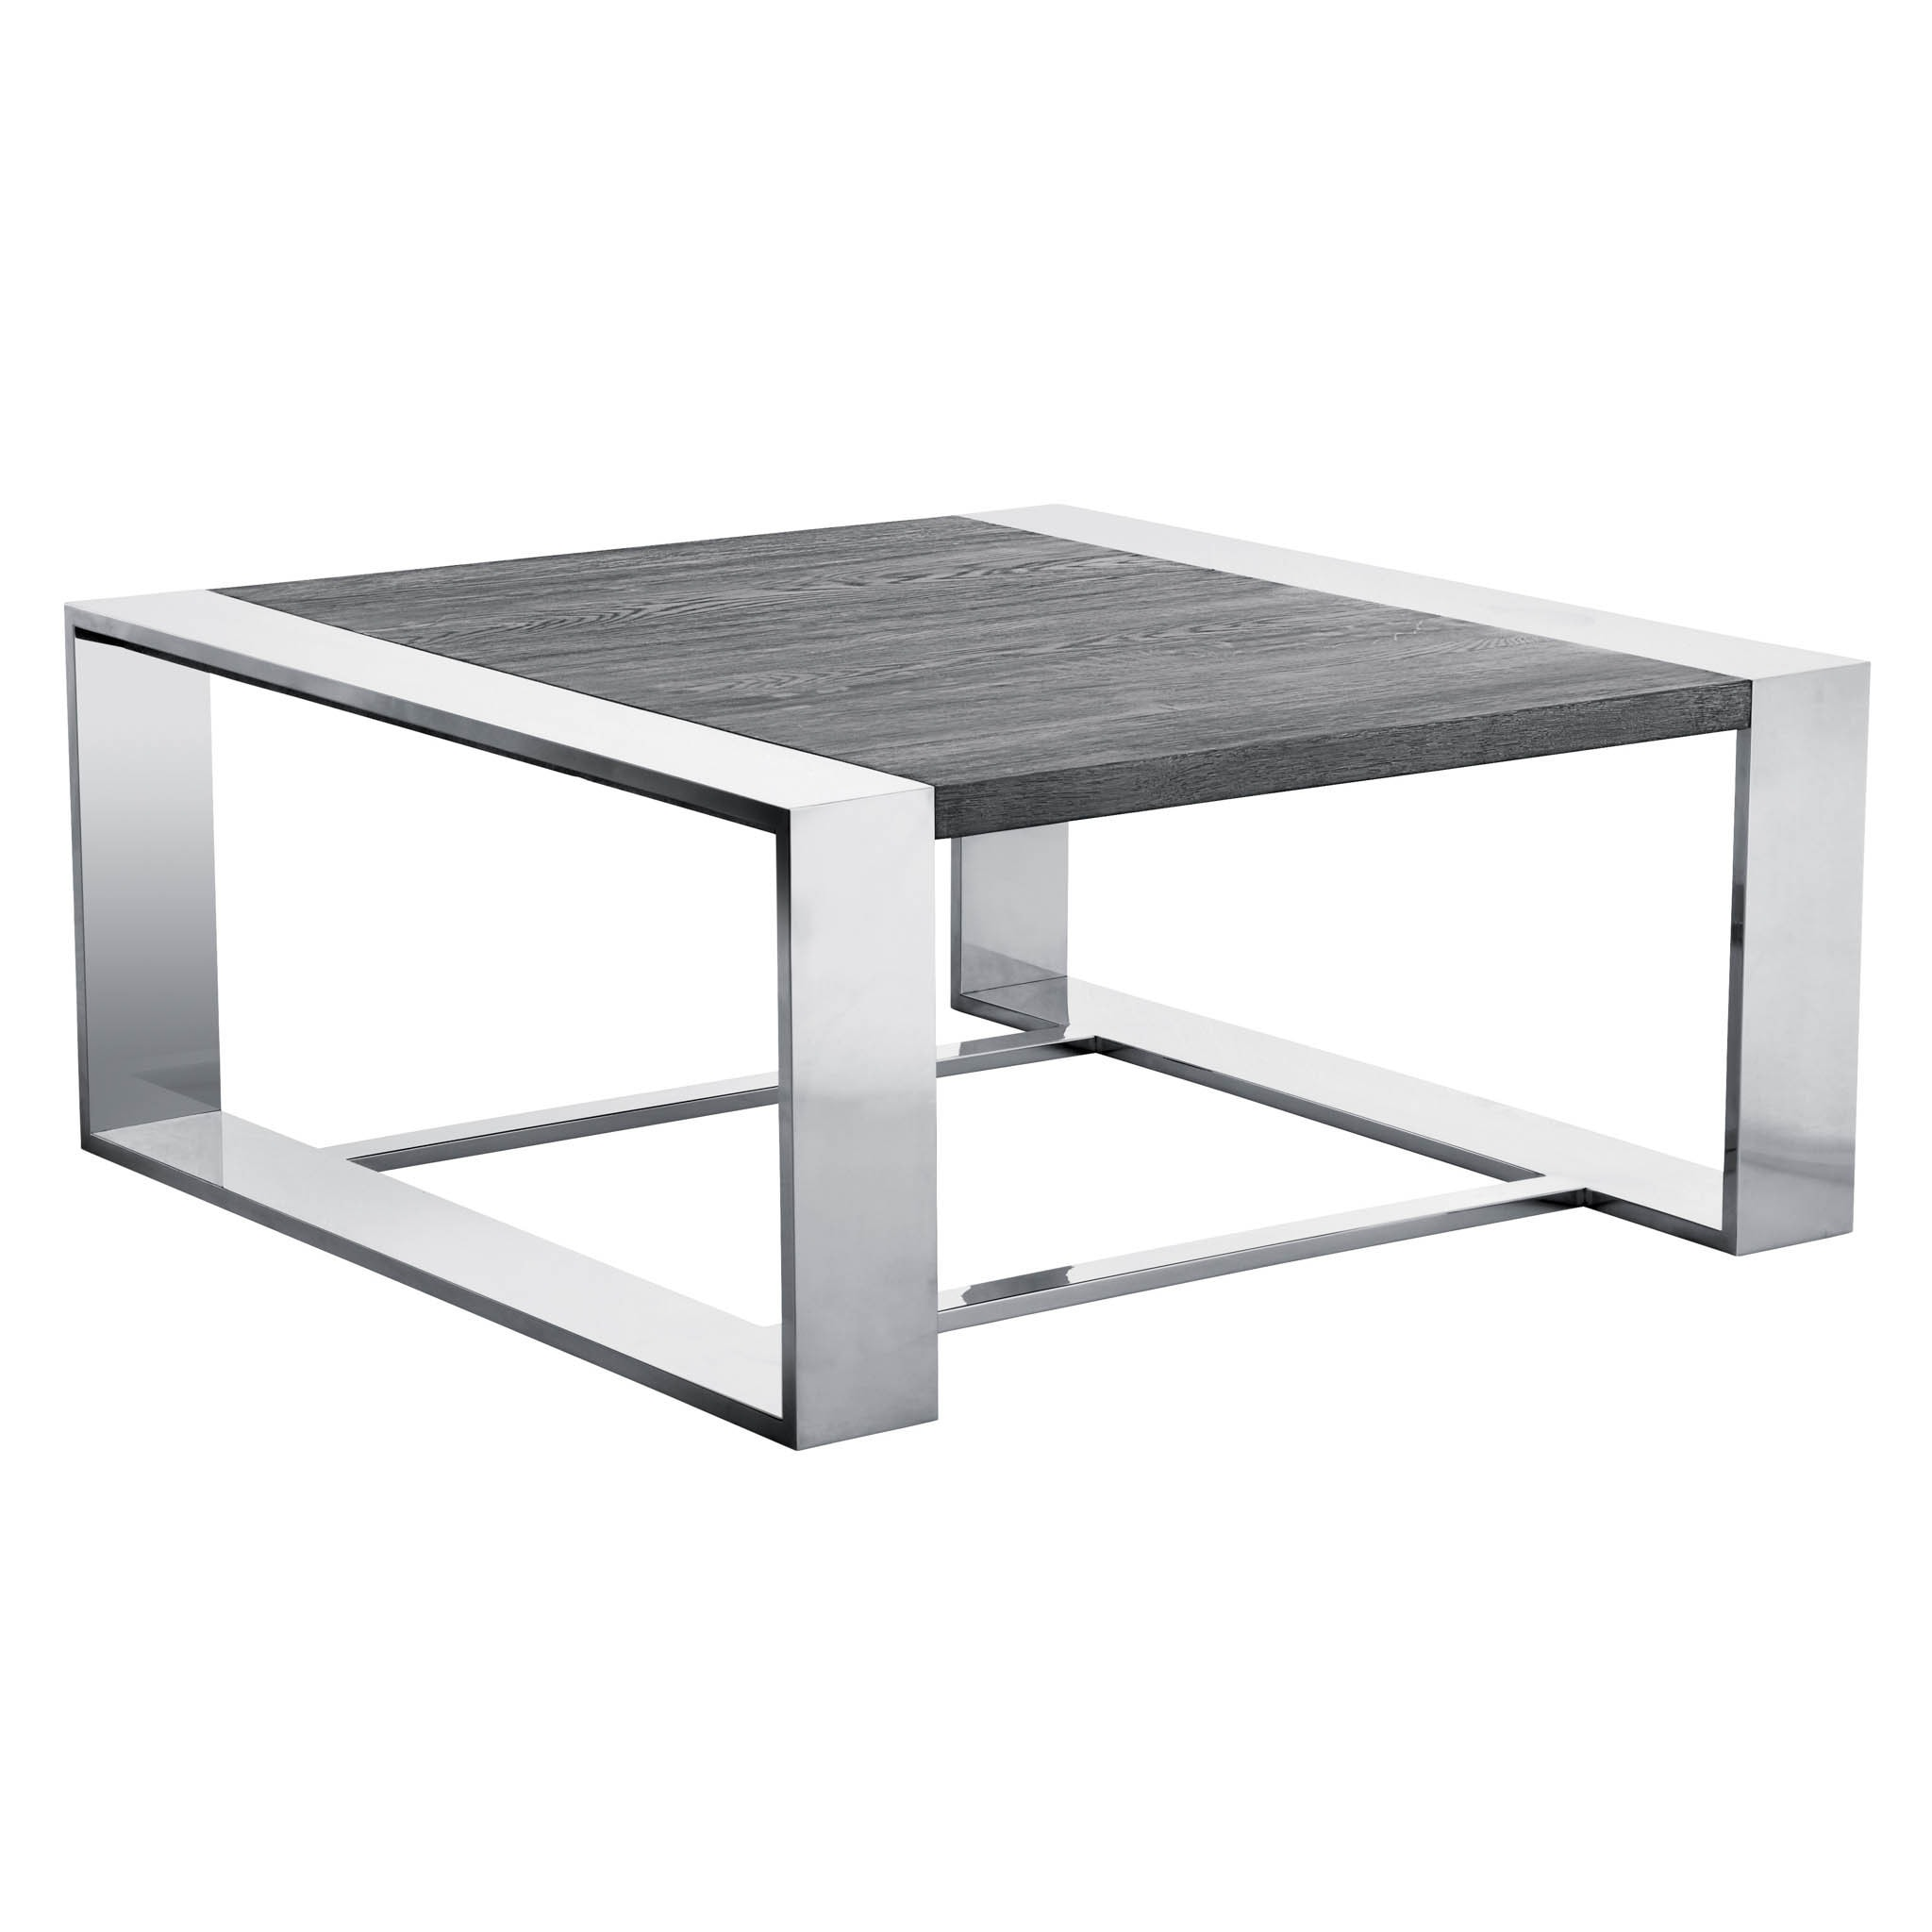 Sunpan Club Dalton Coffee Table Free Shipping Today Overstock